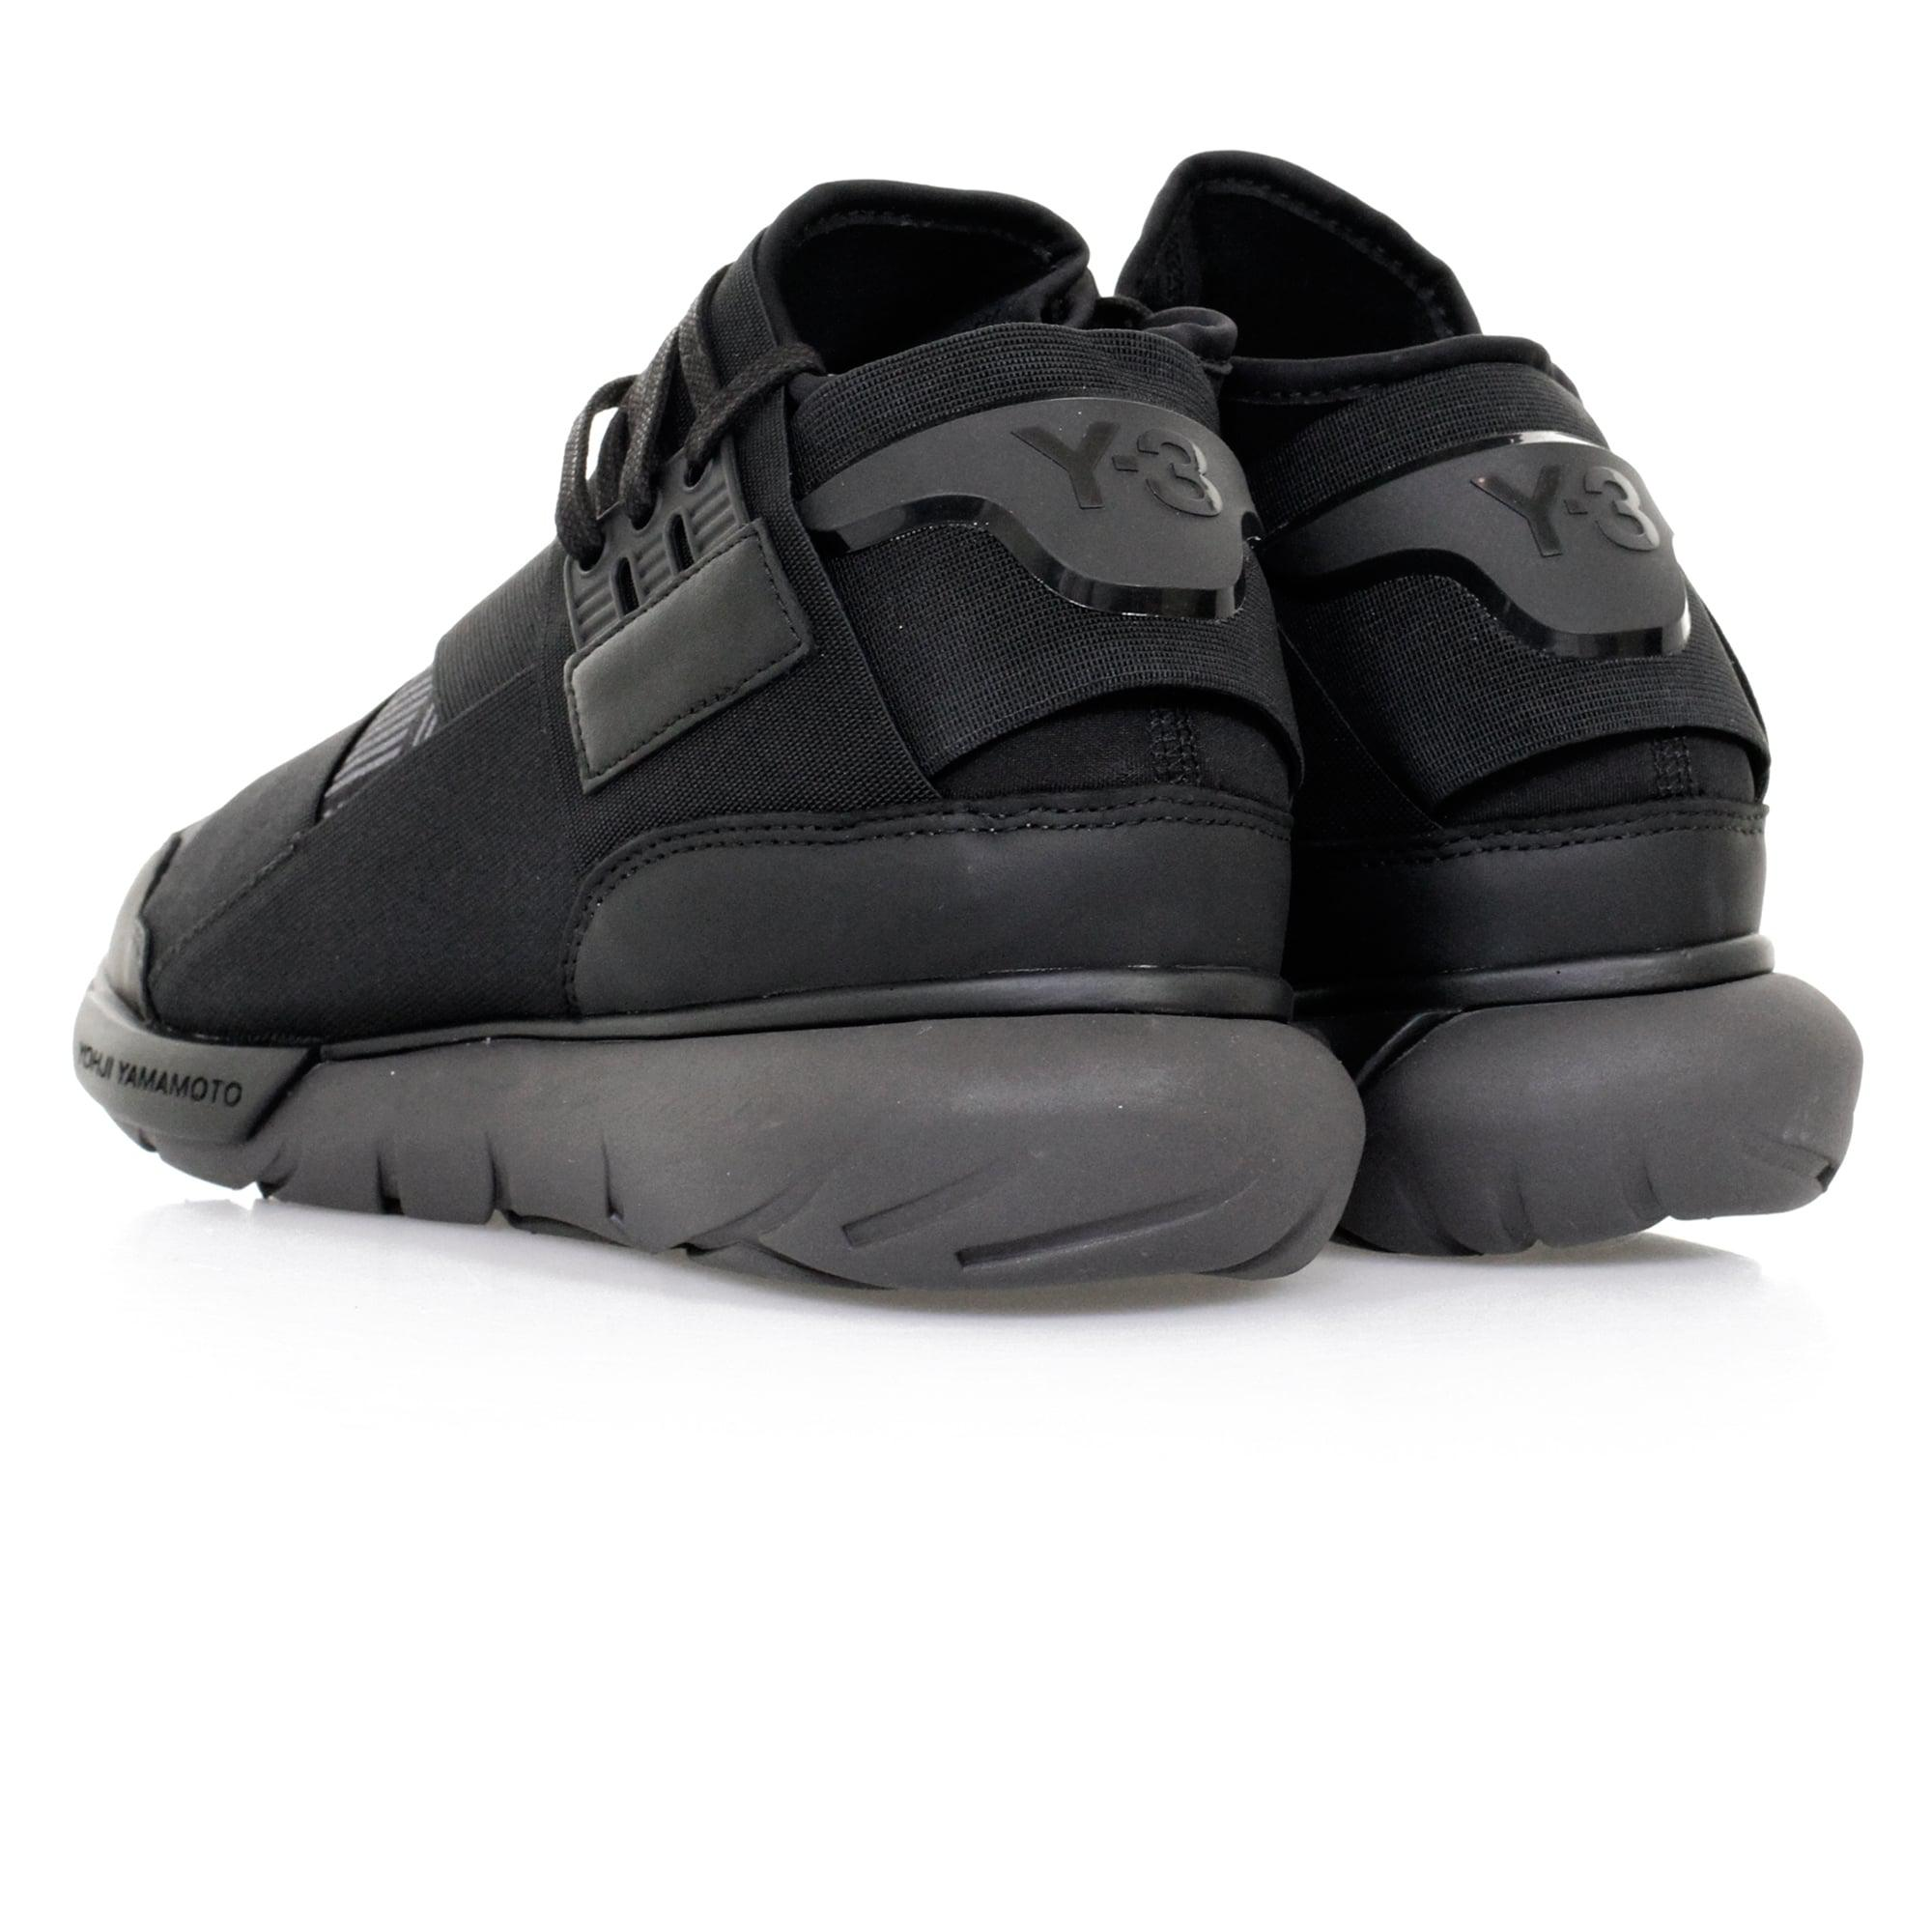 Mens Adidas Y-3 QASA Elle Stretch Sand Shoes  entire collection a0808 02b27  Y-3 Qasa High Utility Black Shoe in Black for Men ... 10144a3da